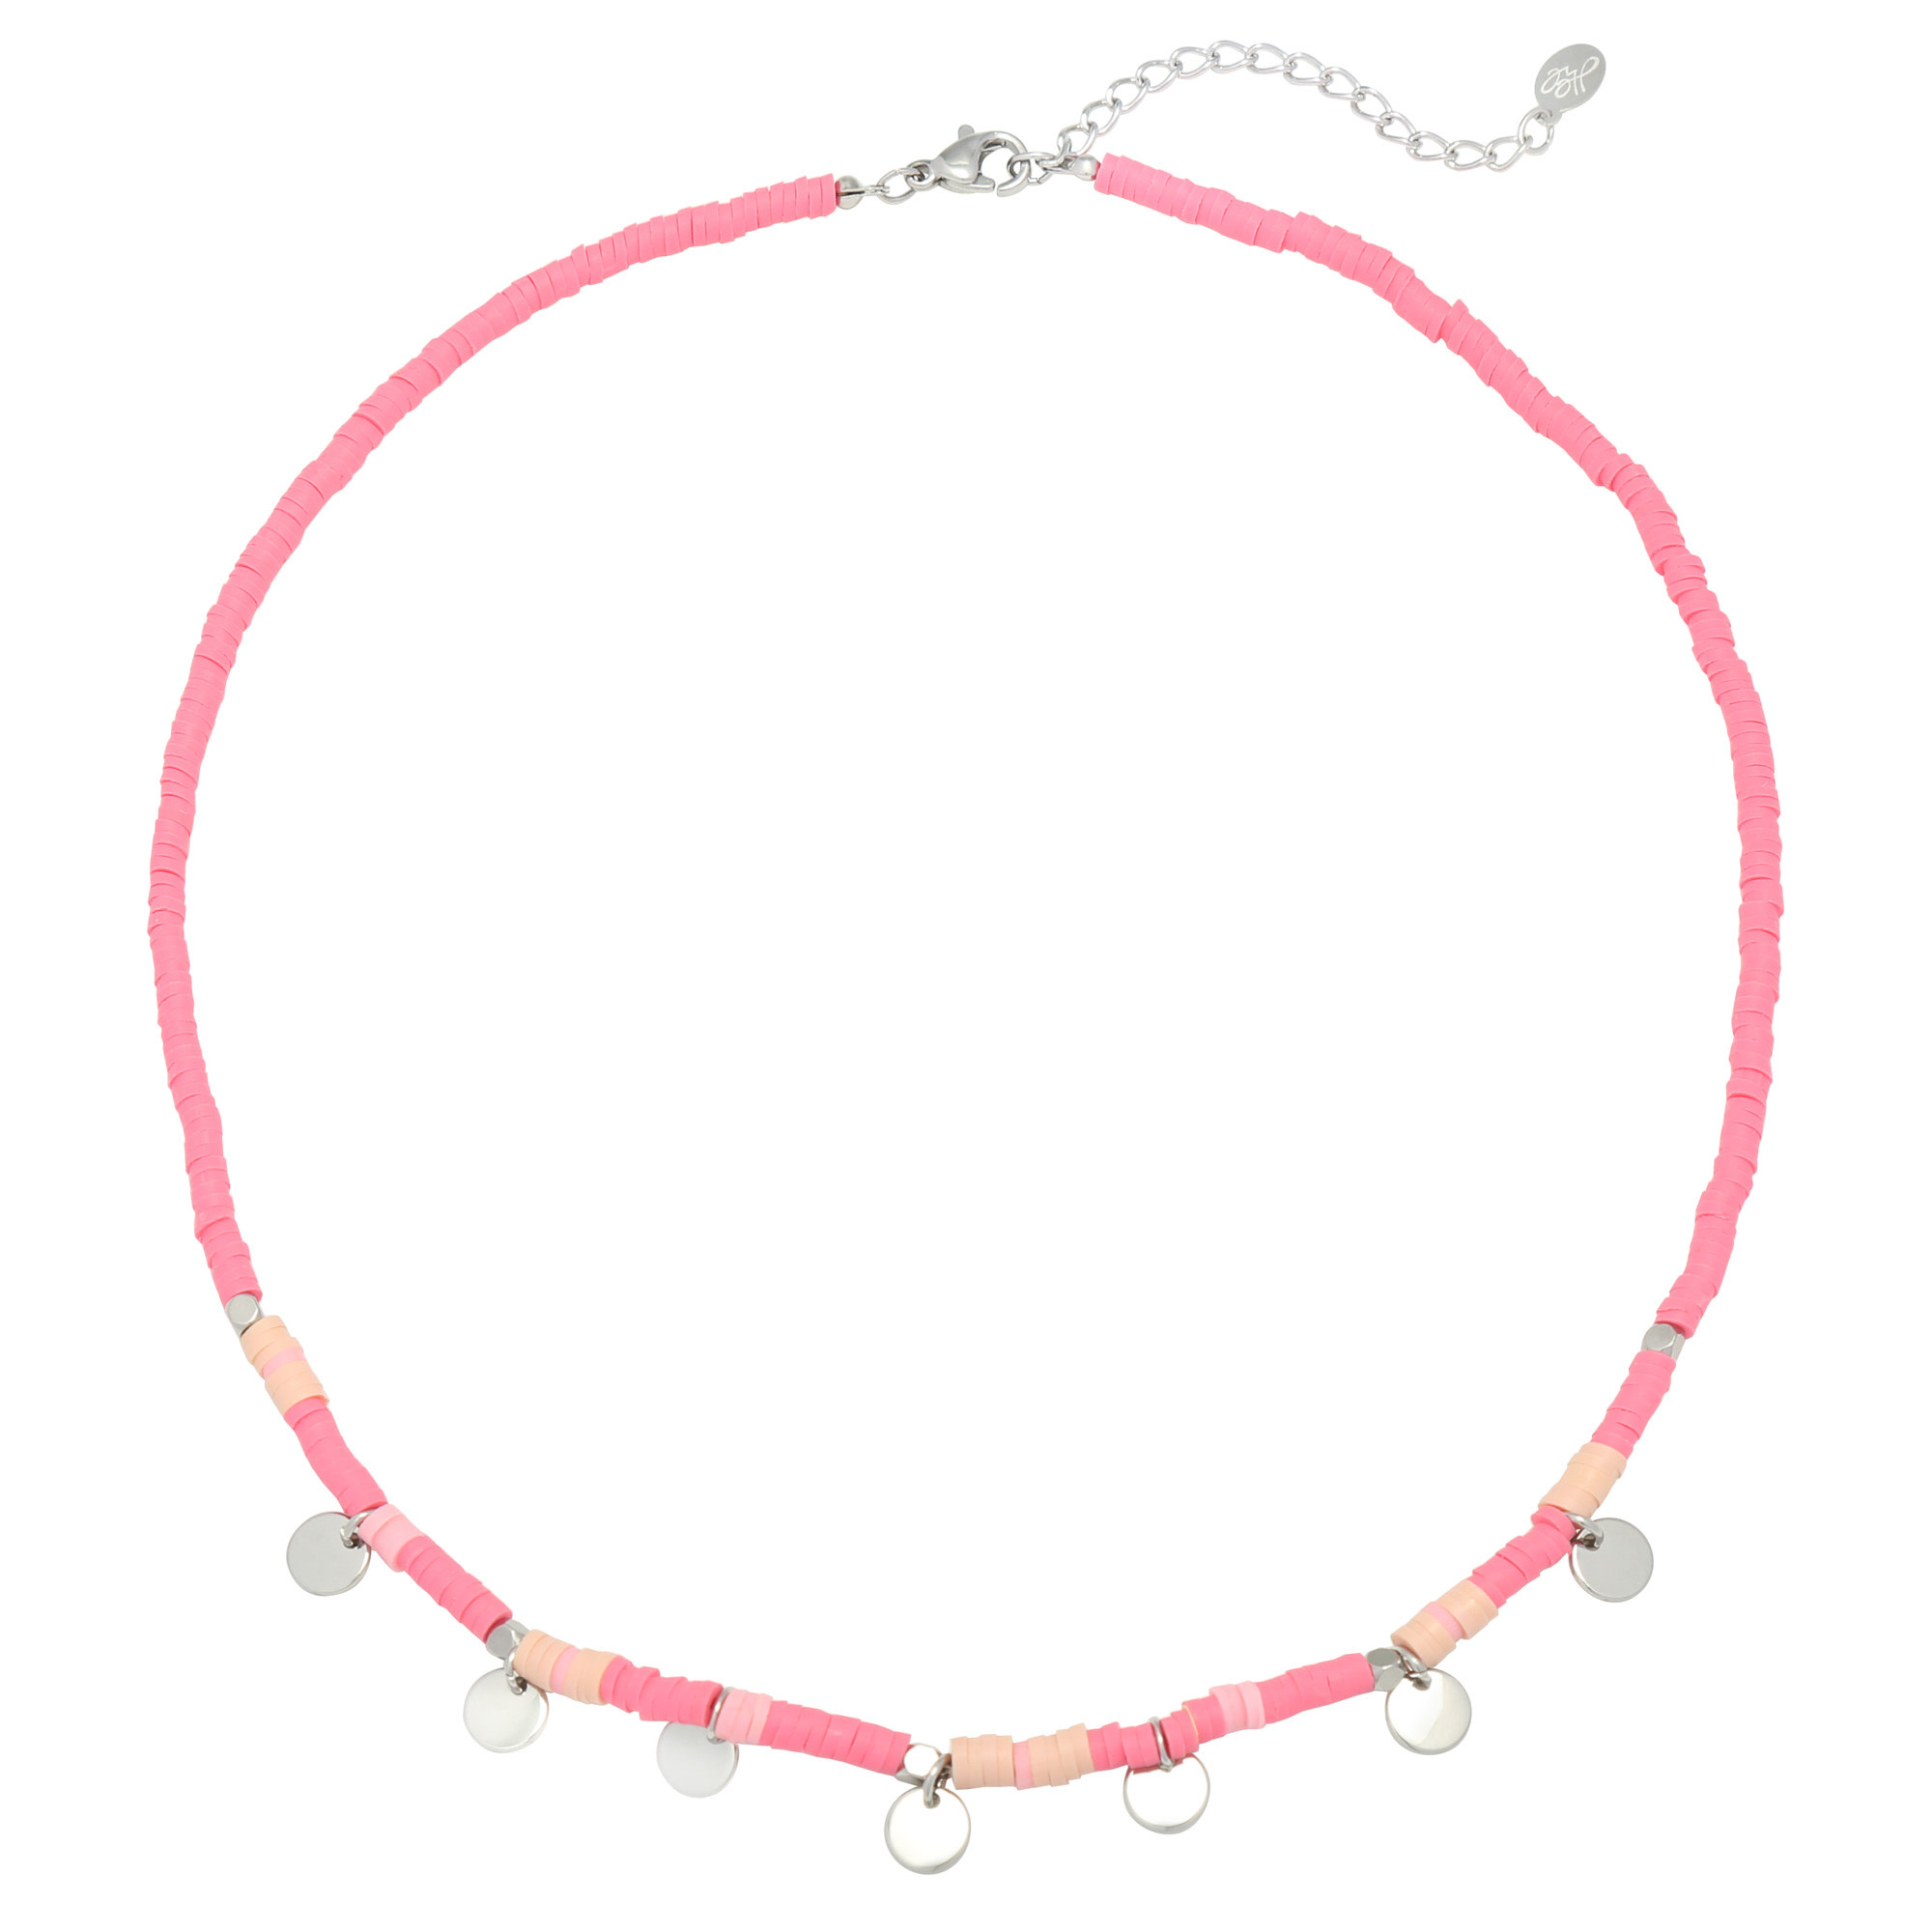 With love Necklace surf with me - Pink silver